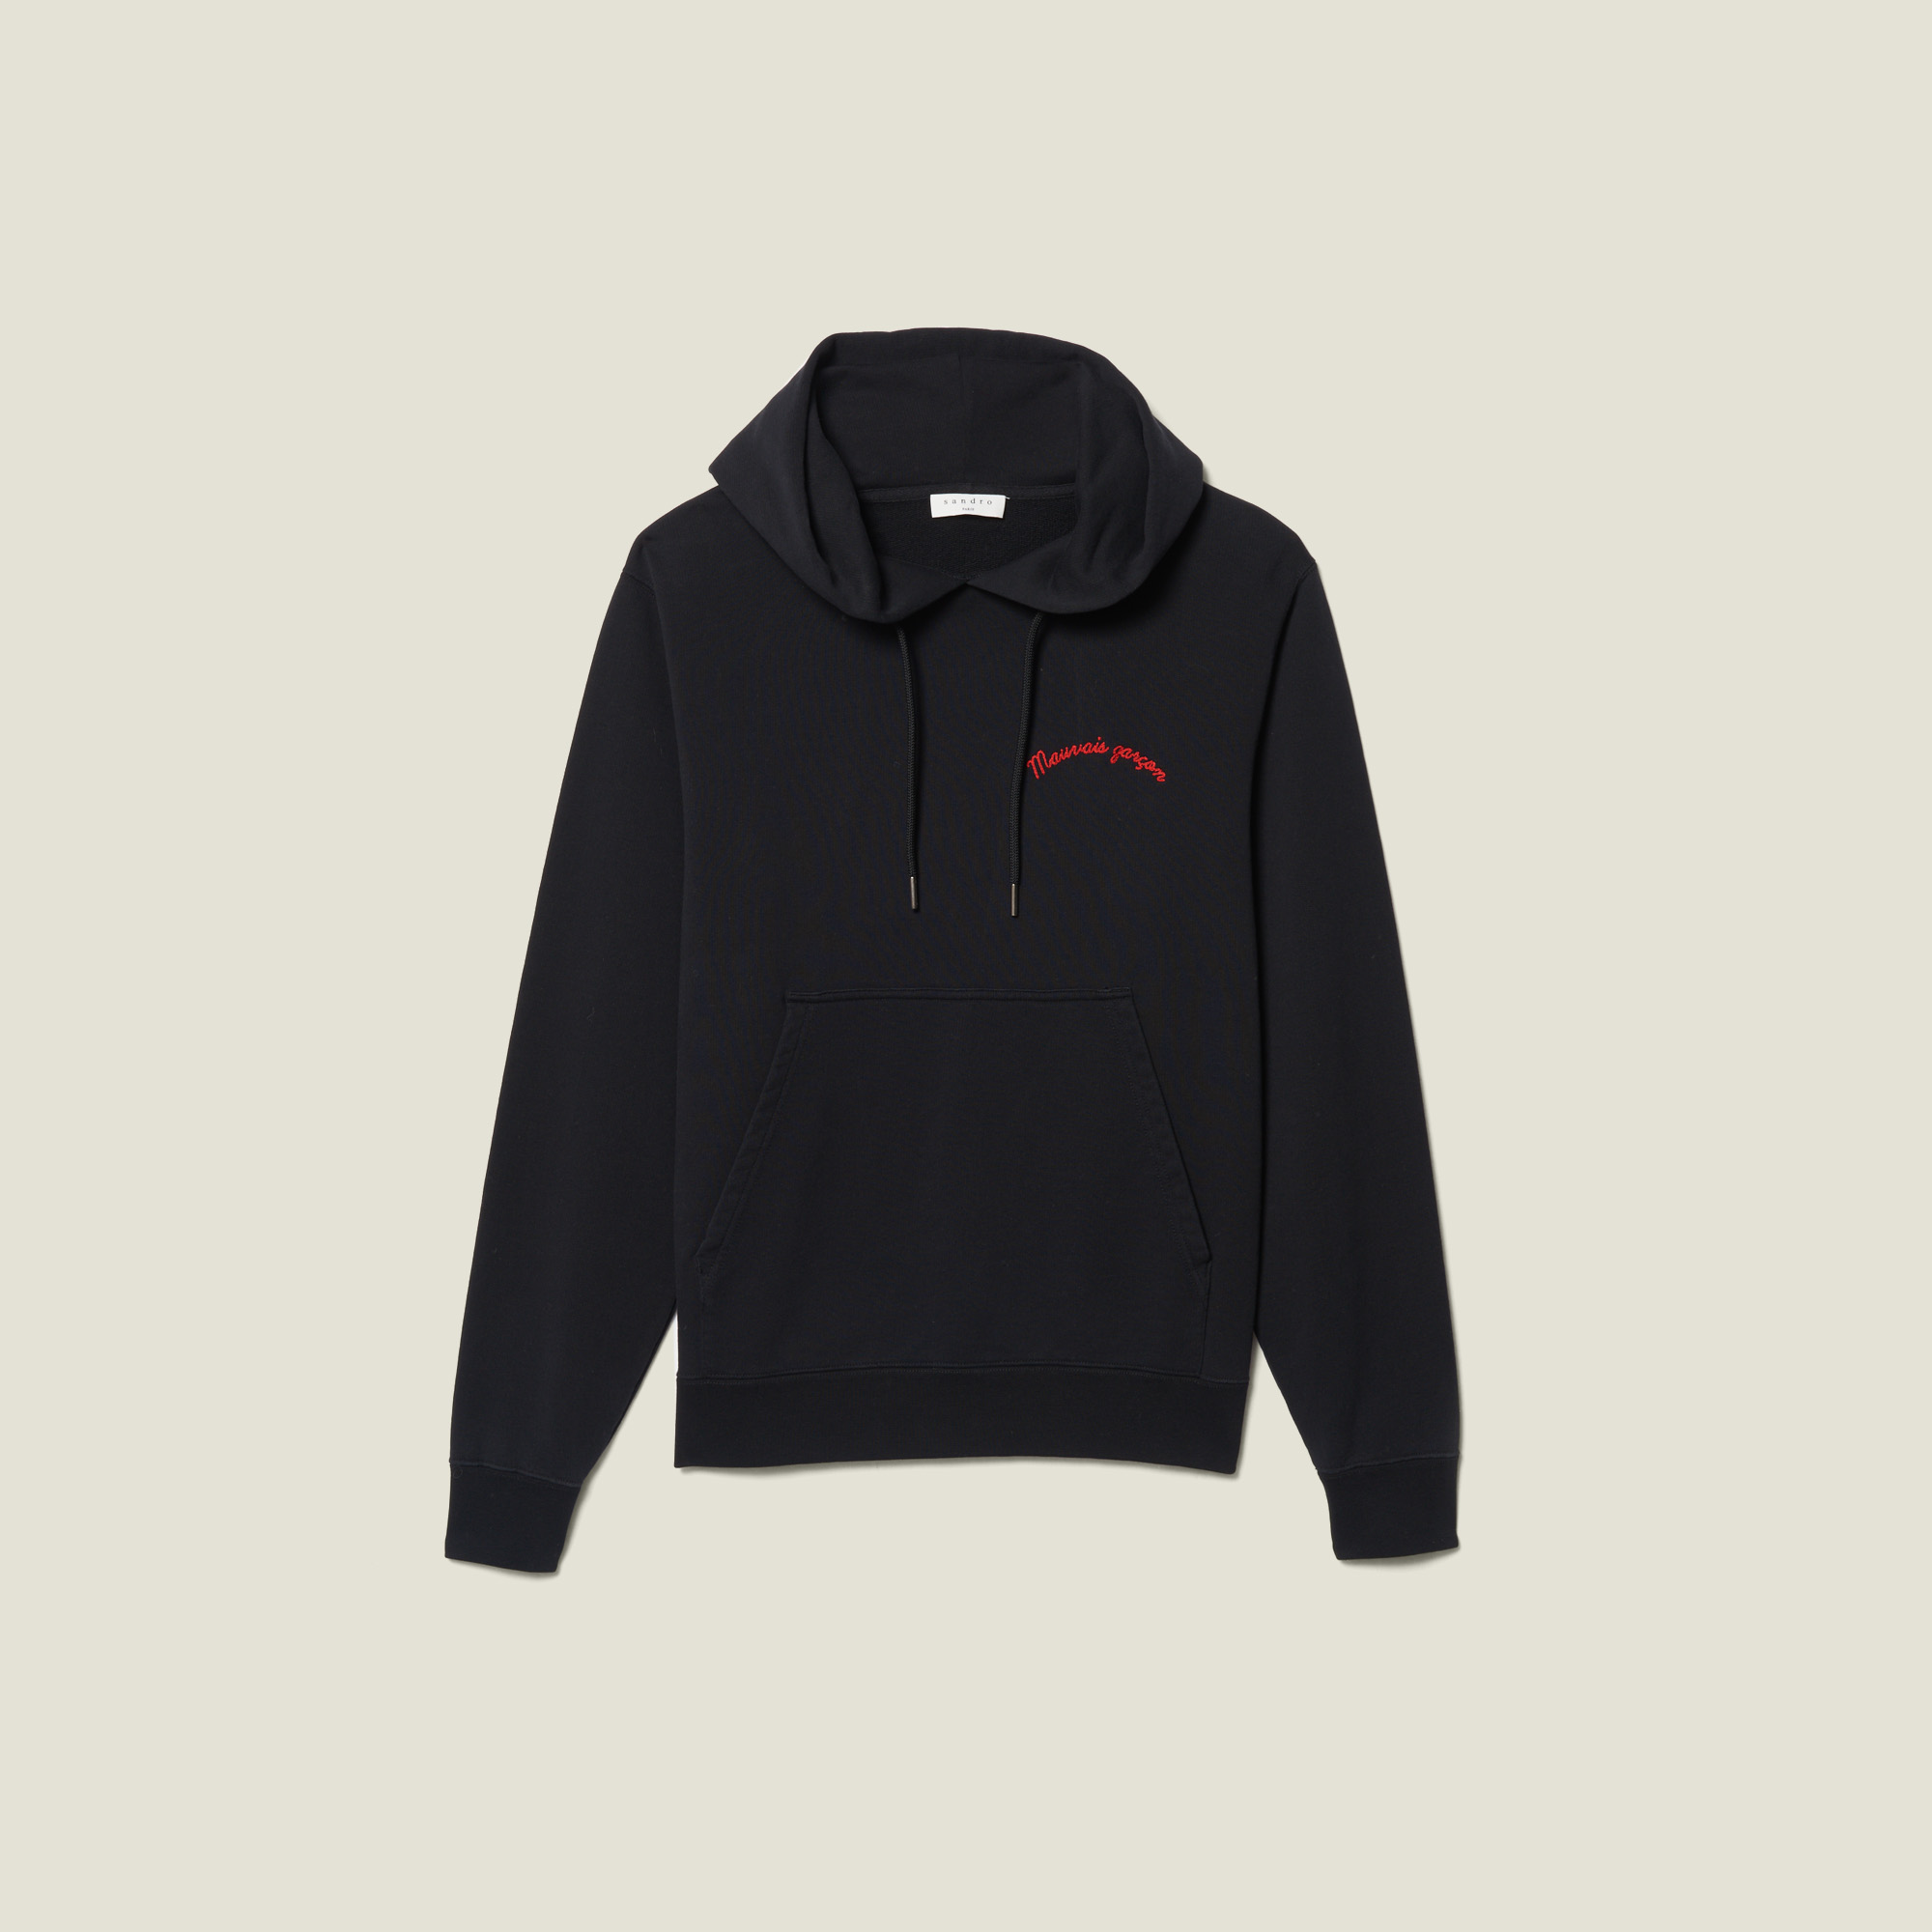 Hoodie With Lettering Embroidery